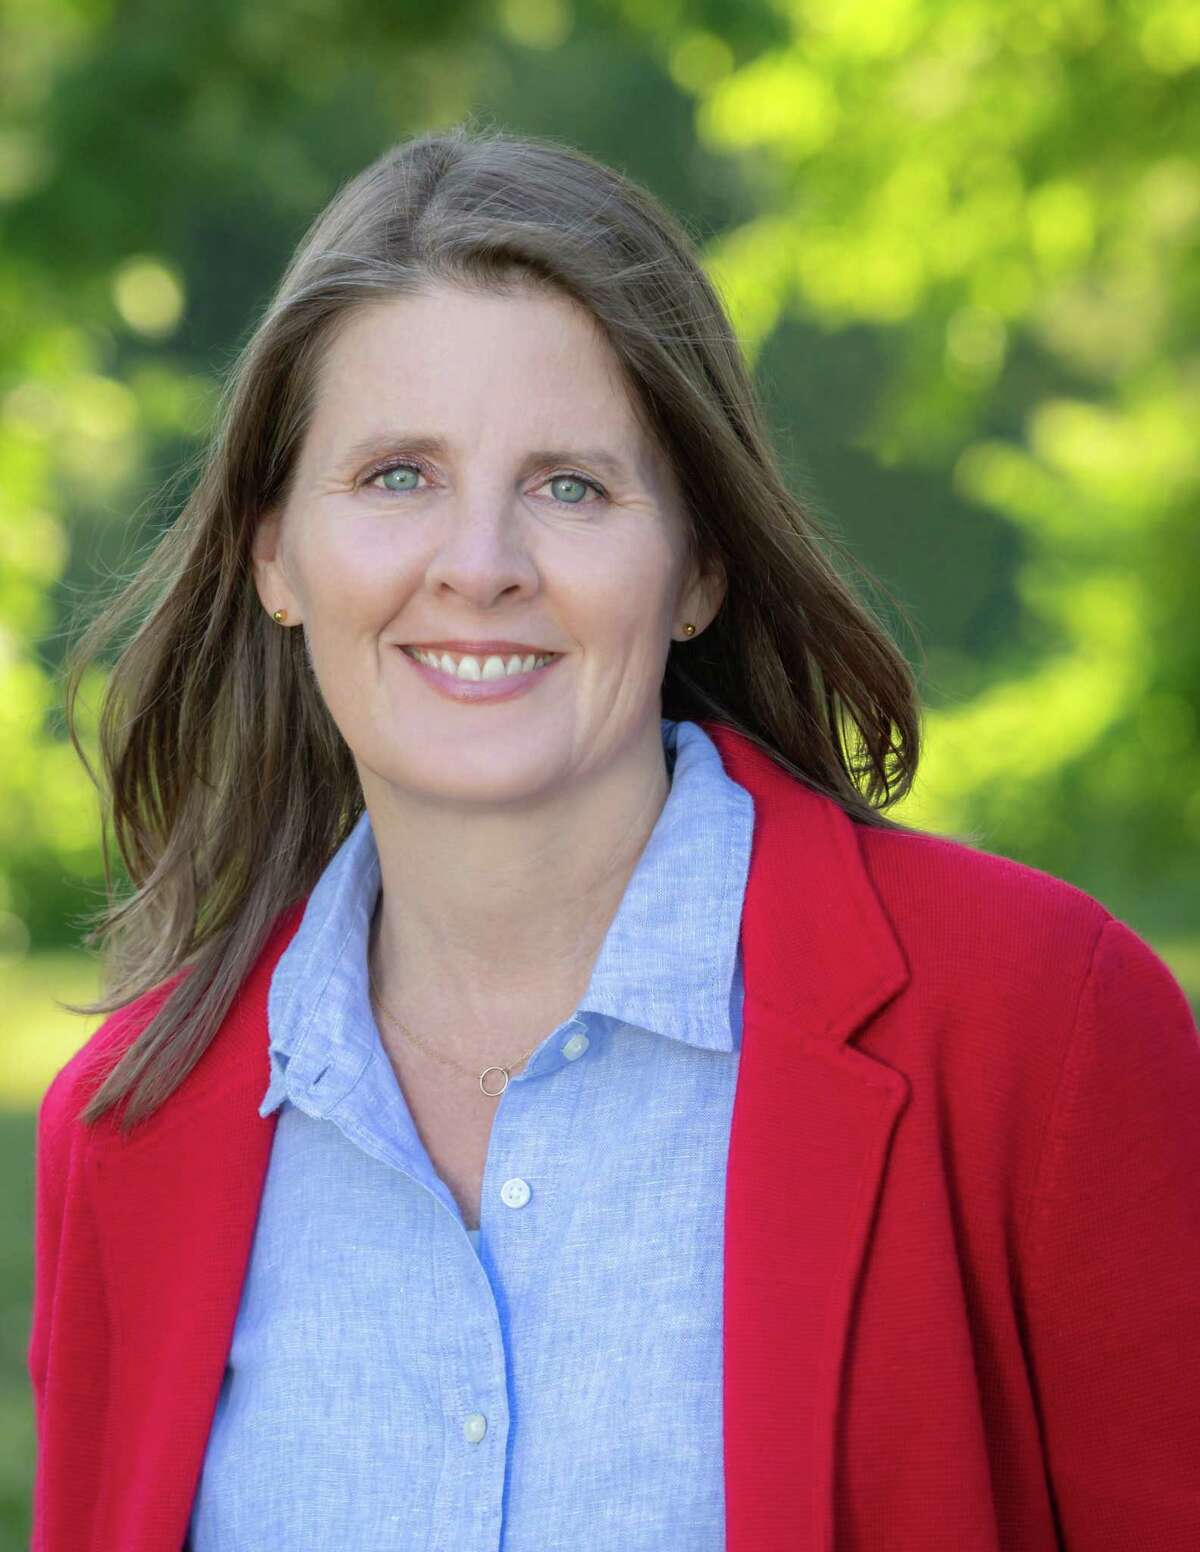 Republican candidates for state office in Connecticut such as Kim Healy will meet voters and collect donations for the New Canaan Food Pantry on the steps of Town Hall Saturday, Aug. 22, at 10 a.m.